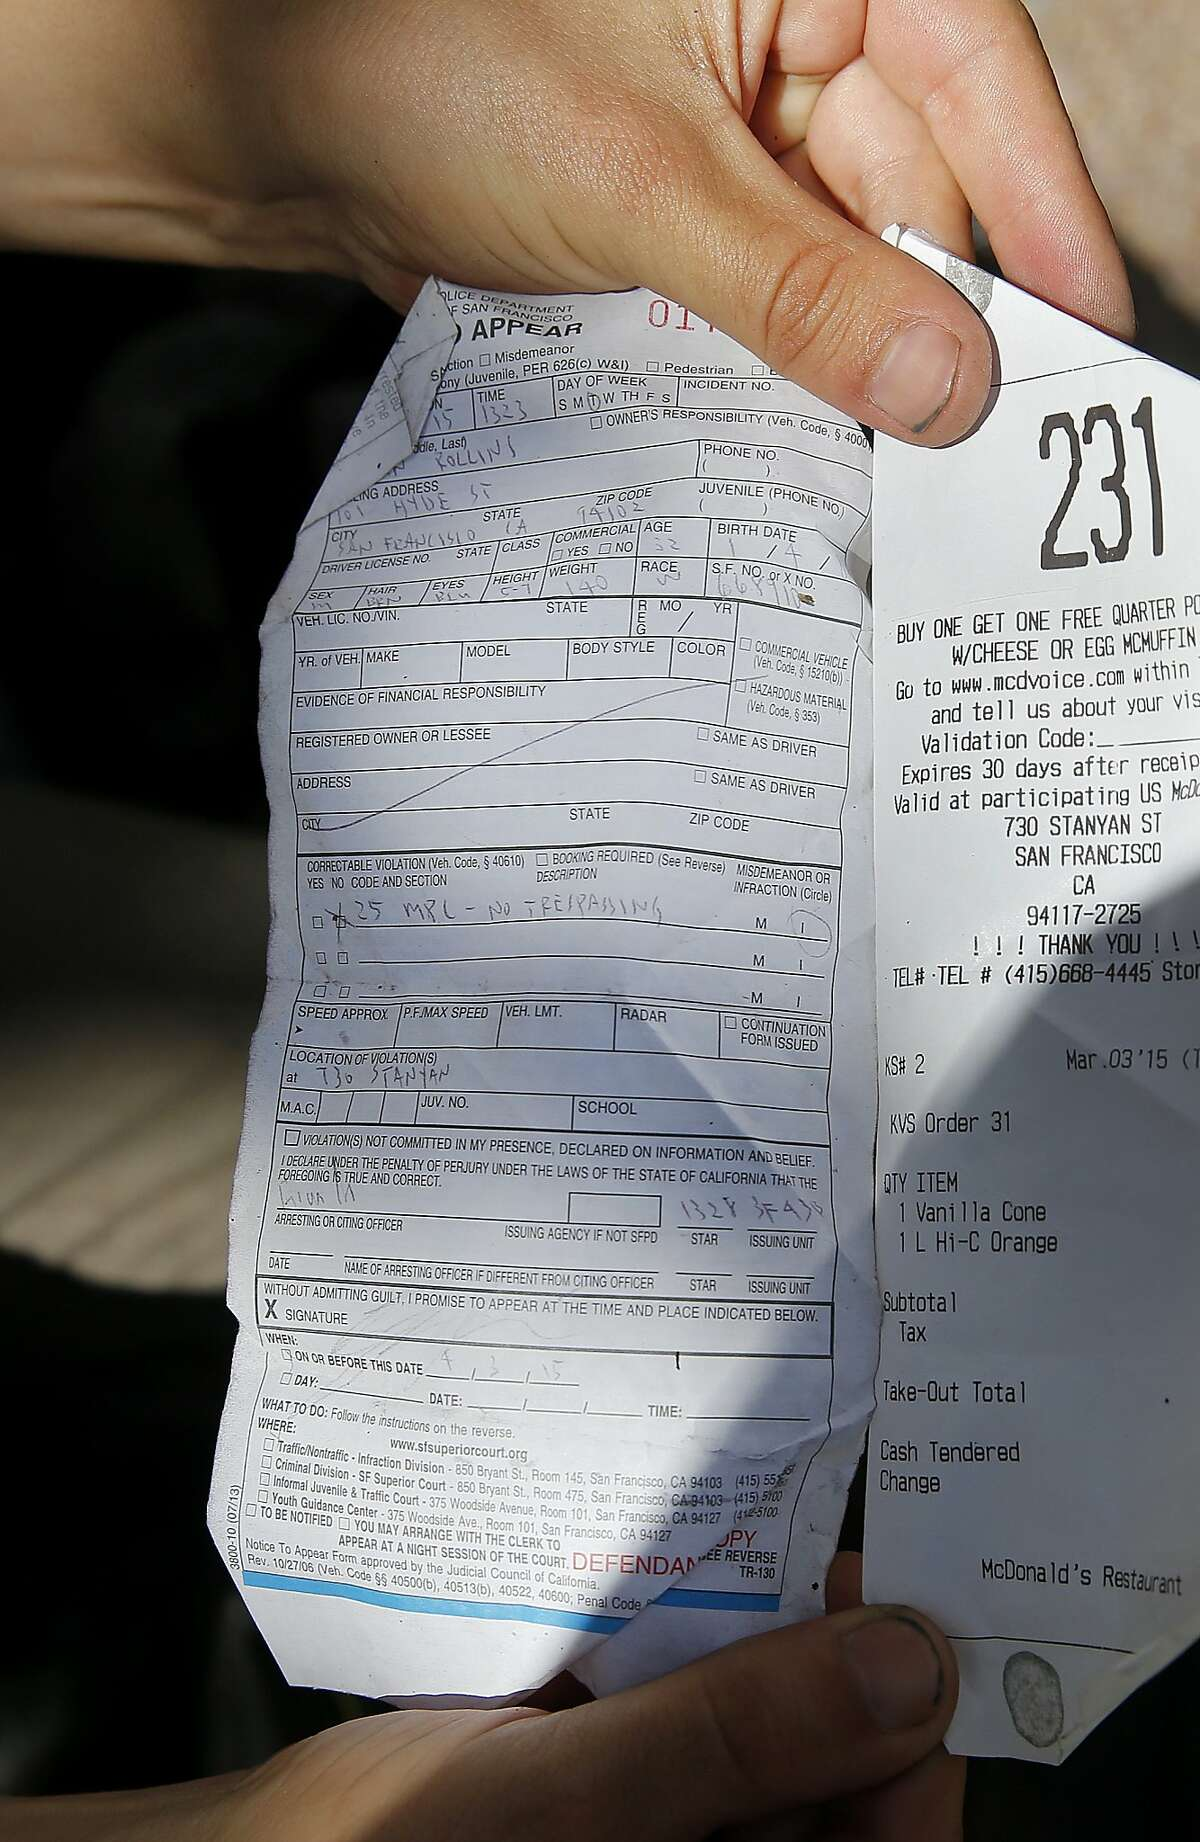 A young man shows off his ticket he received under the sit-lie law on Haight Street next to a receipt from the restaurant he visited. Sit-lie citations have declined sharply since they peaked in 2013, according to San Francisco Superior Court records.